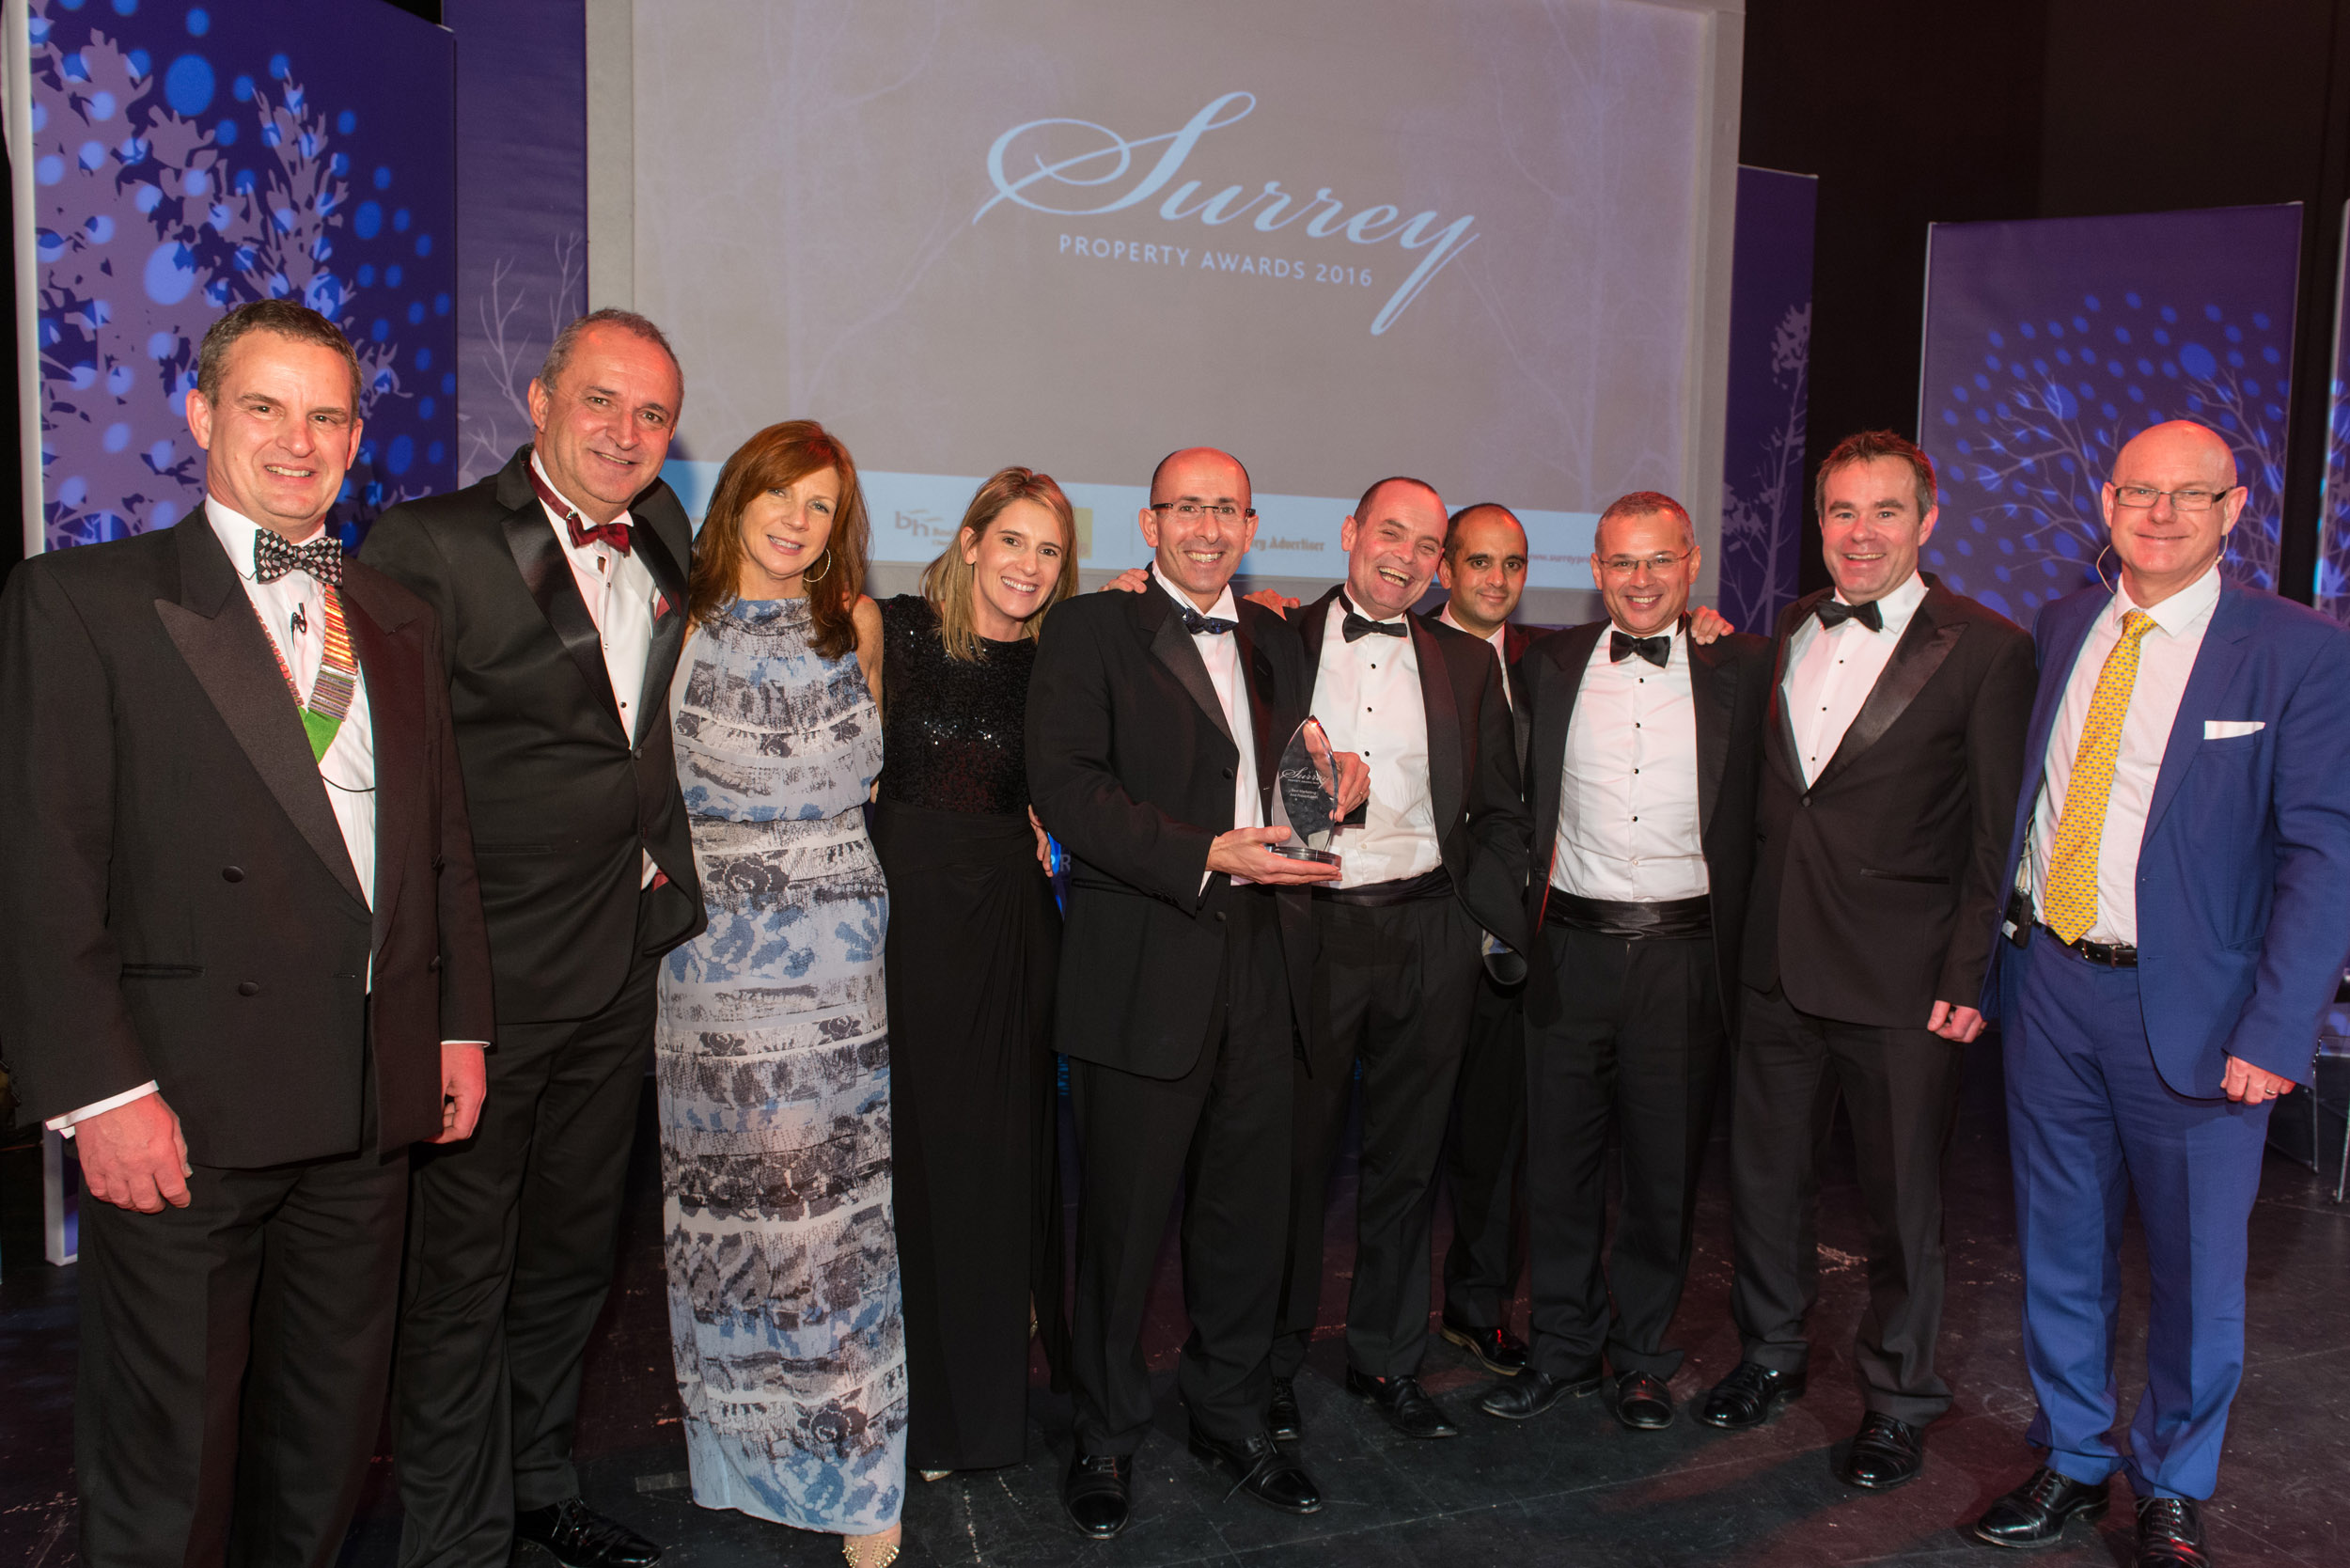 Seymours Estate Agents once again scoops Surrey Property Award for Best Marketing & Presentation